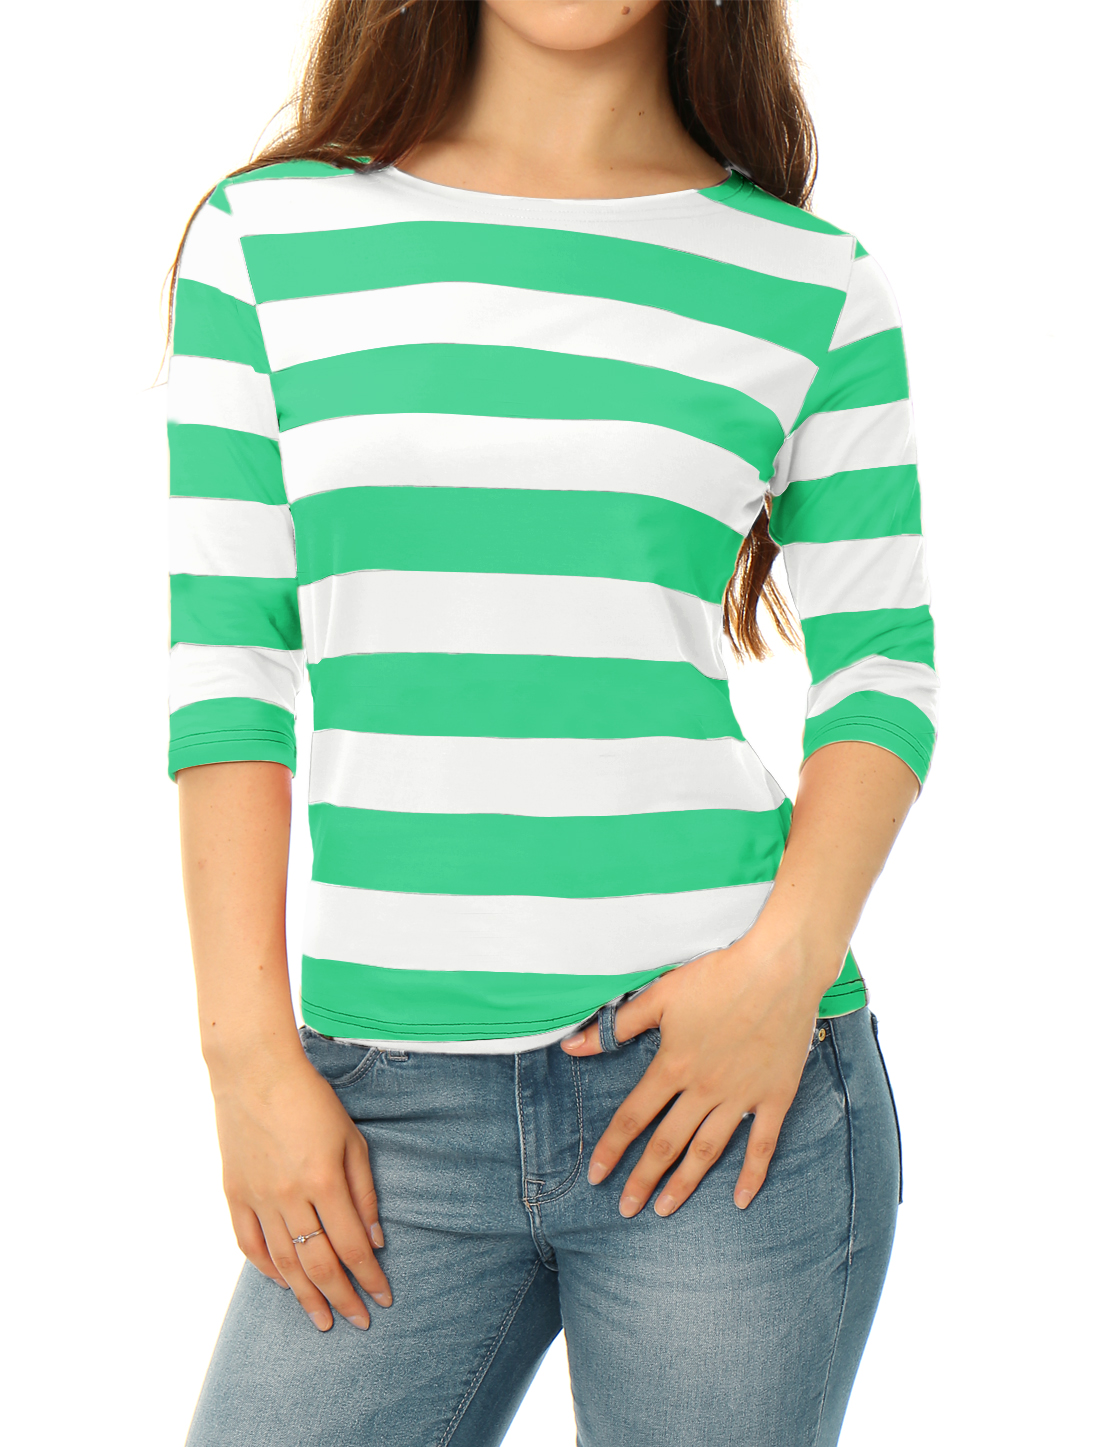 Women Elbow Sleeves Boat Neck Slim Fit Striped Tee Light Green XS